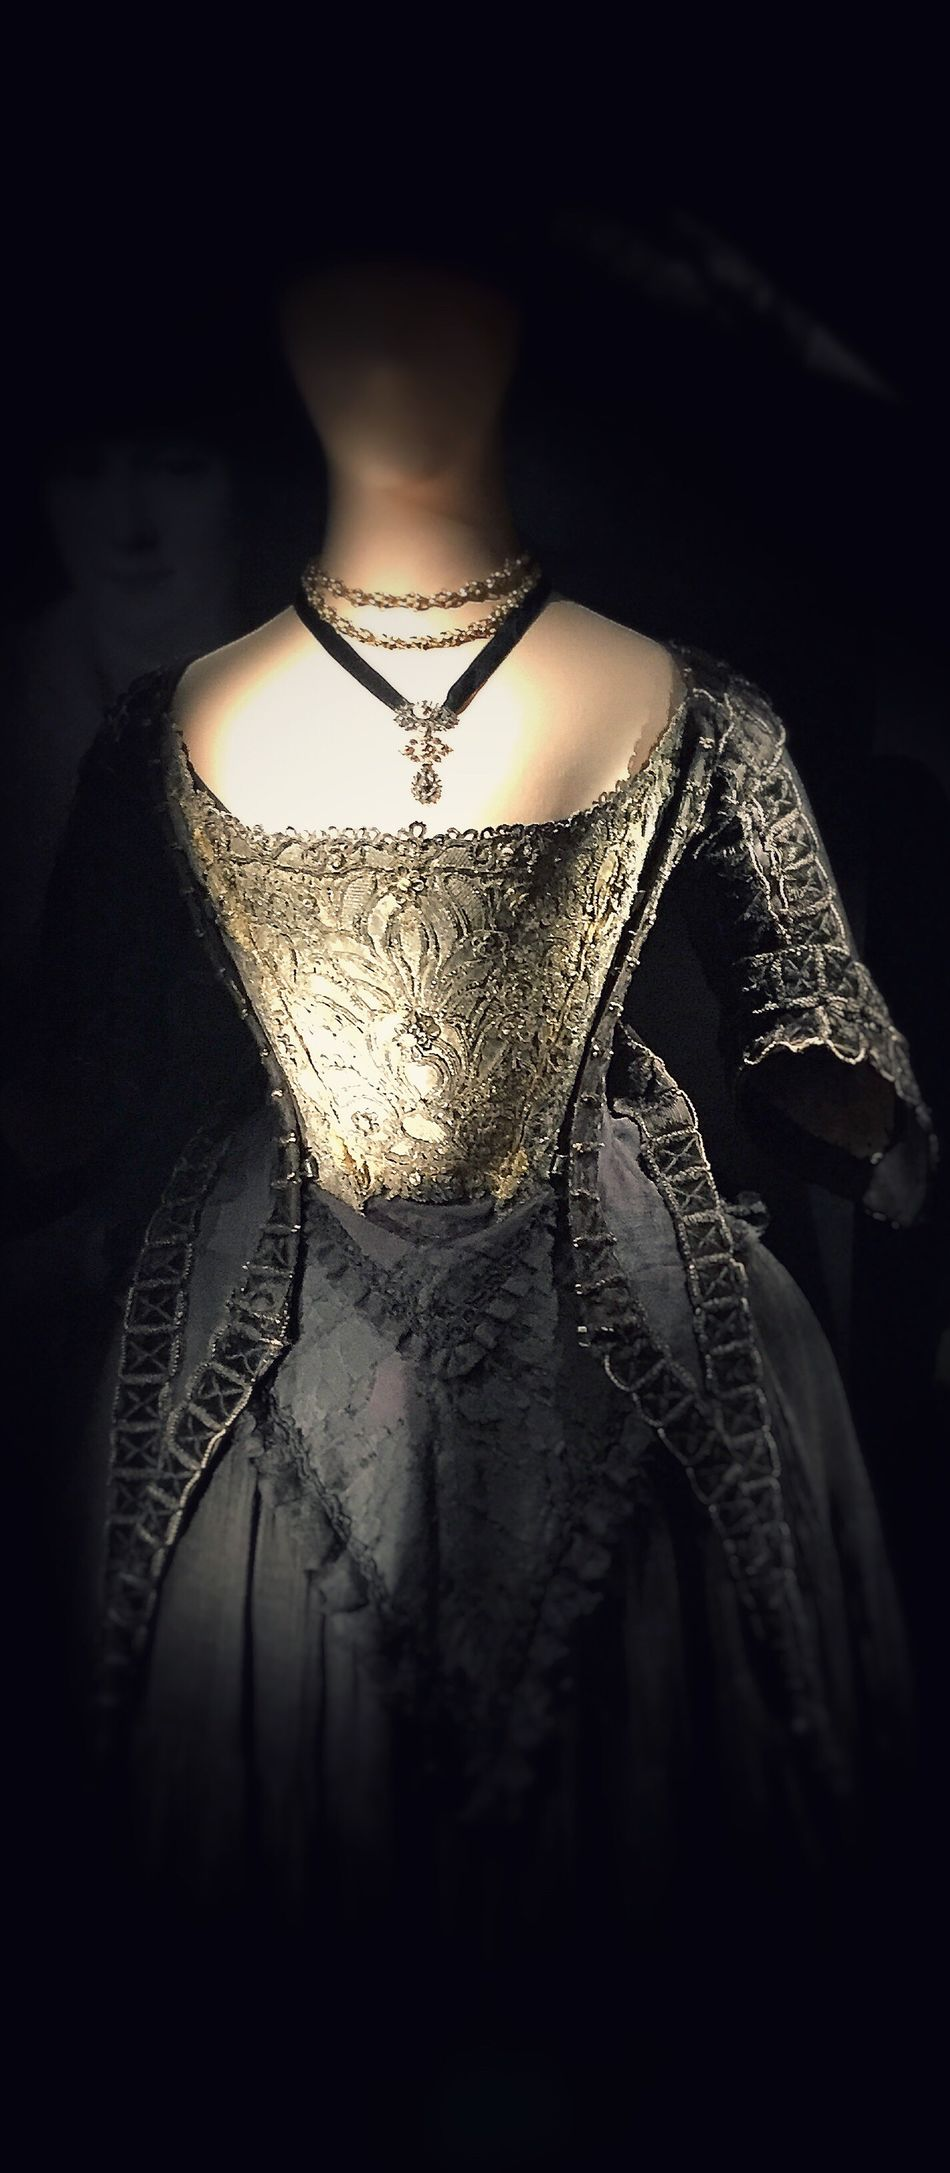 Did you see her? The ghost behind the dress?😳 Dress Renesance Black Dress Ghost Photography Tadaa Community Vacation Strasbourg France Alsace Old Dress Mysterious Scary Embroidery Embroidered